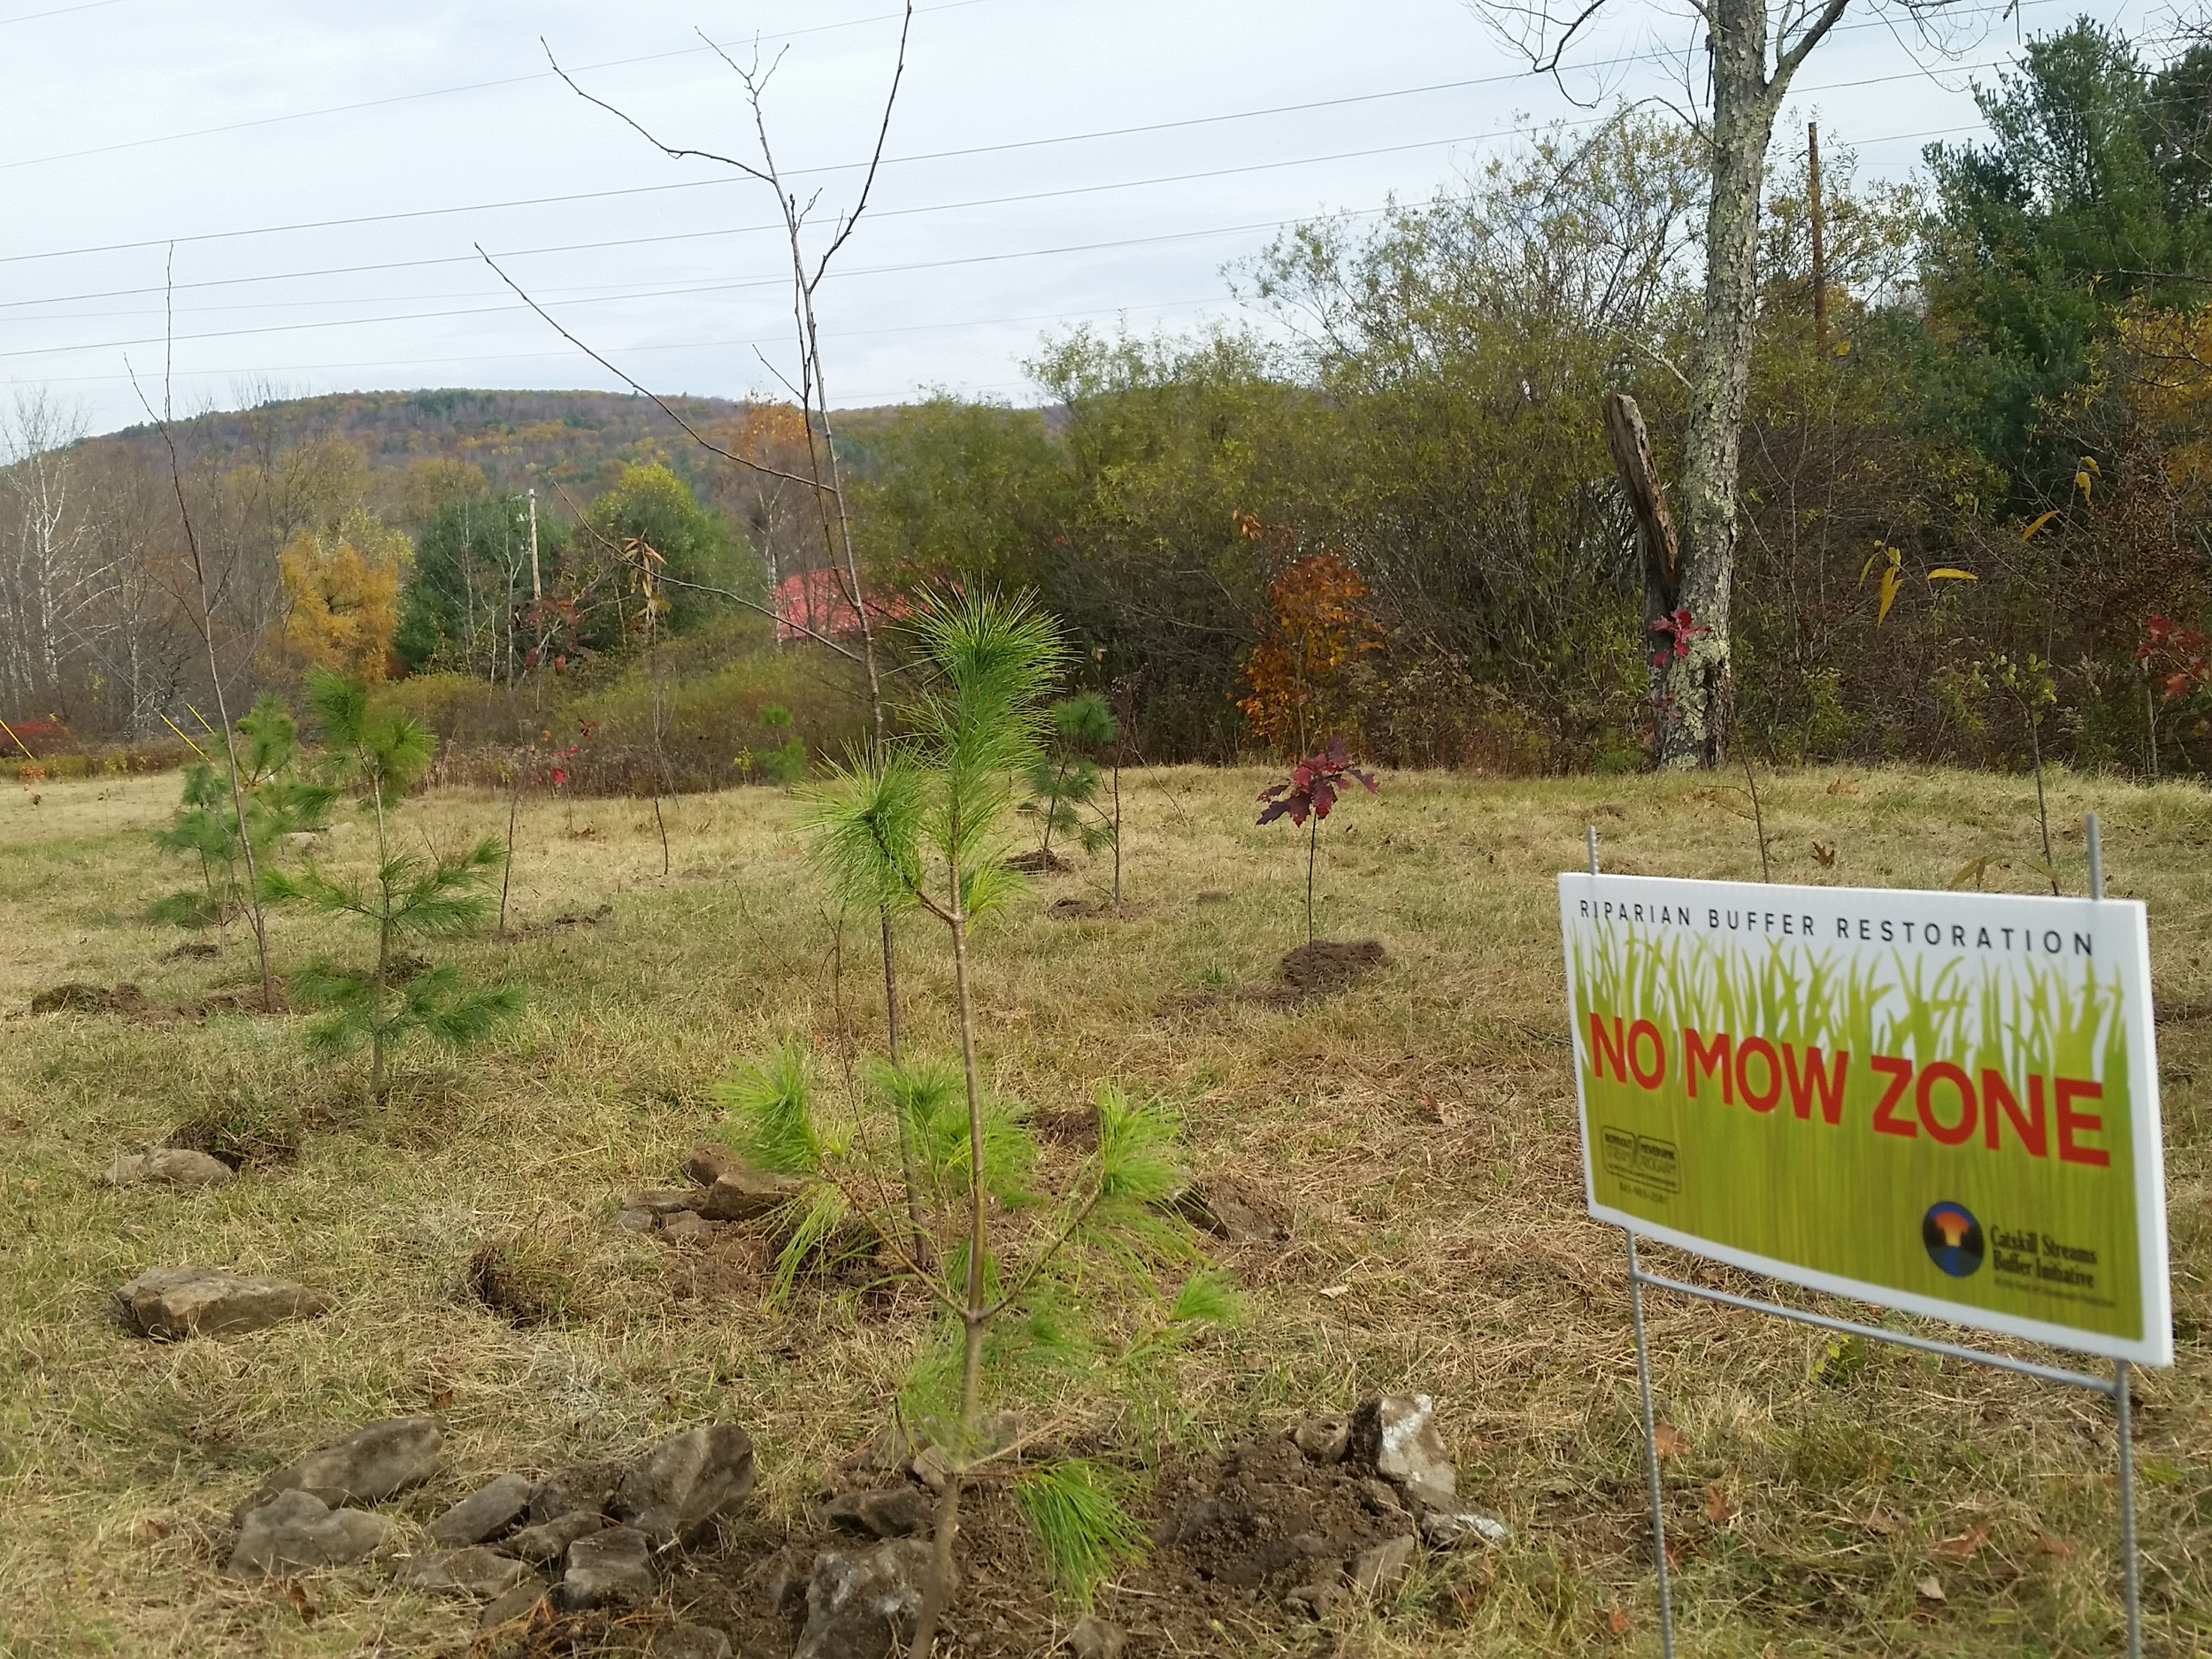 No Mow Zone and Buffer Planting, Red Brook and Chestnut Creek